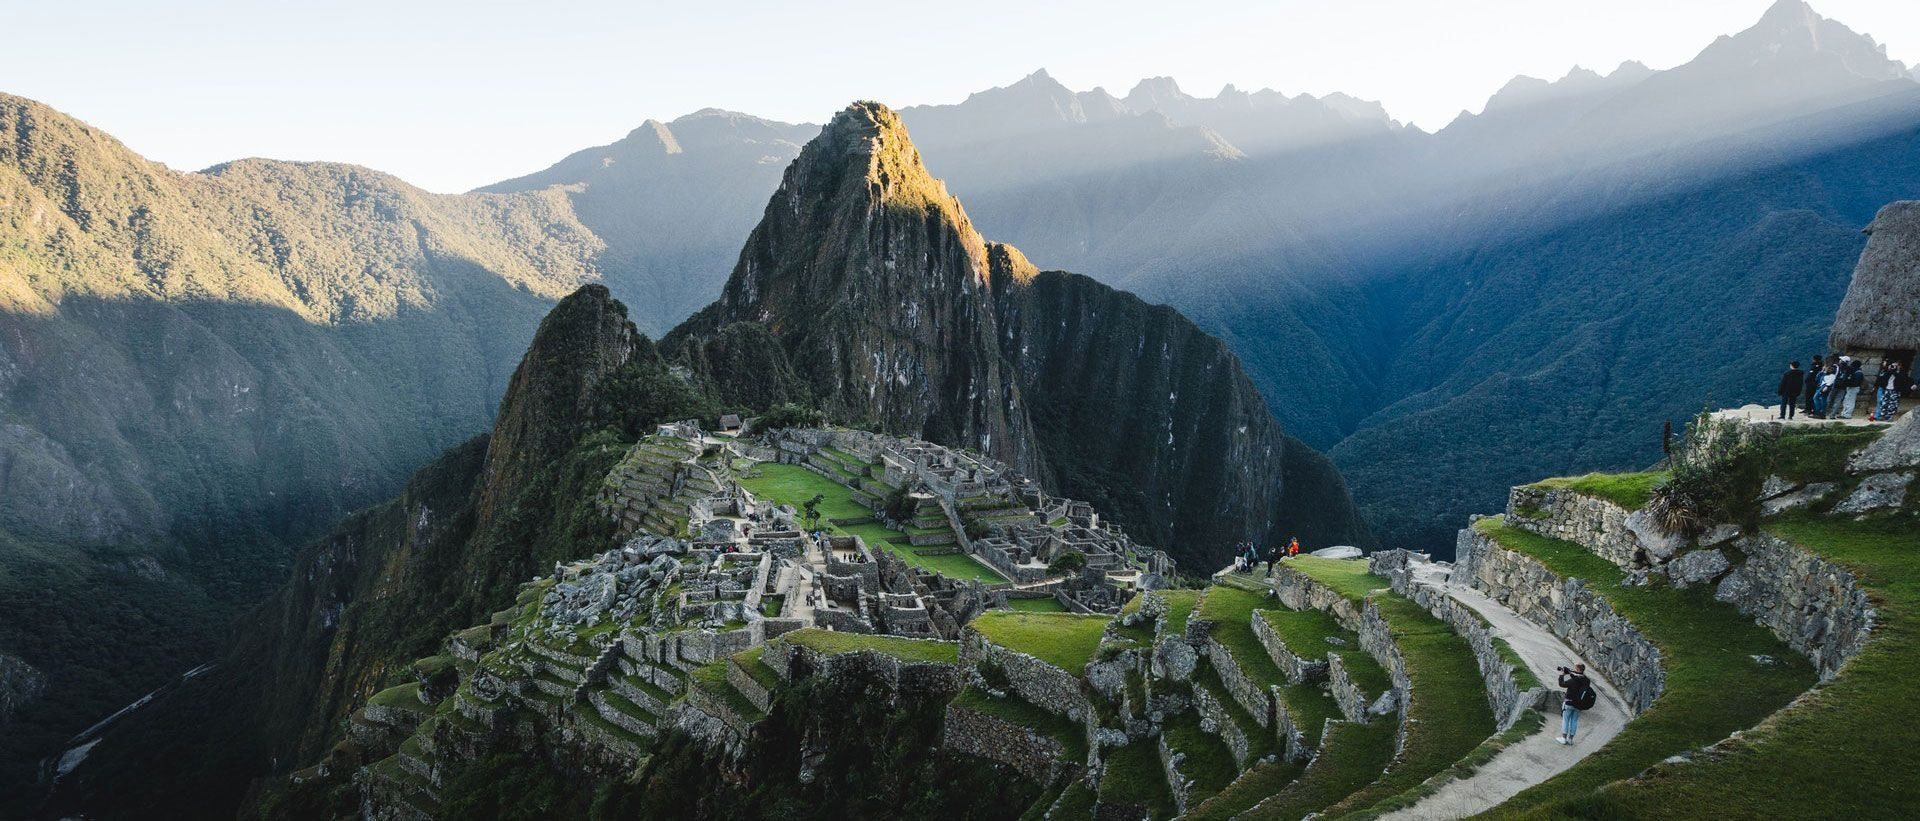 Traveling destinations South America